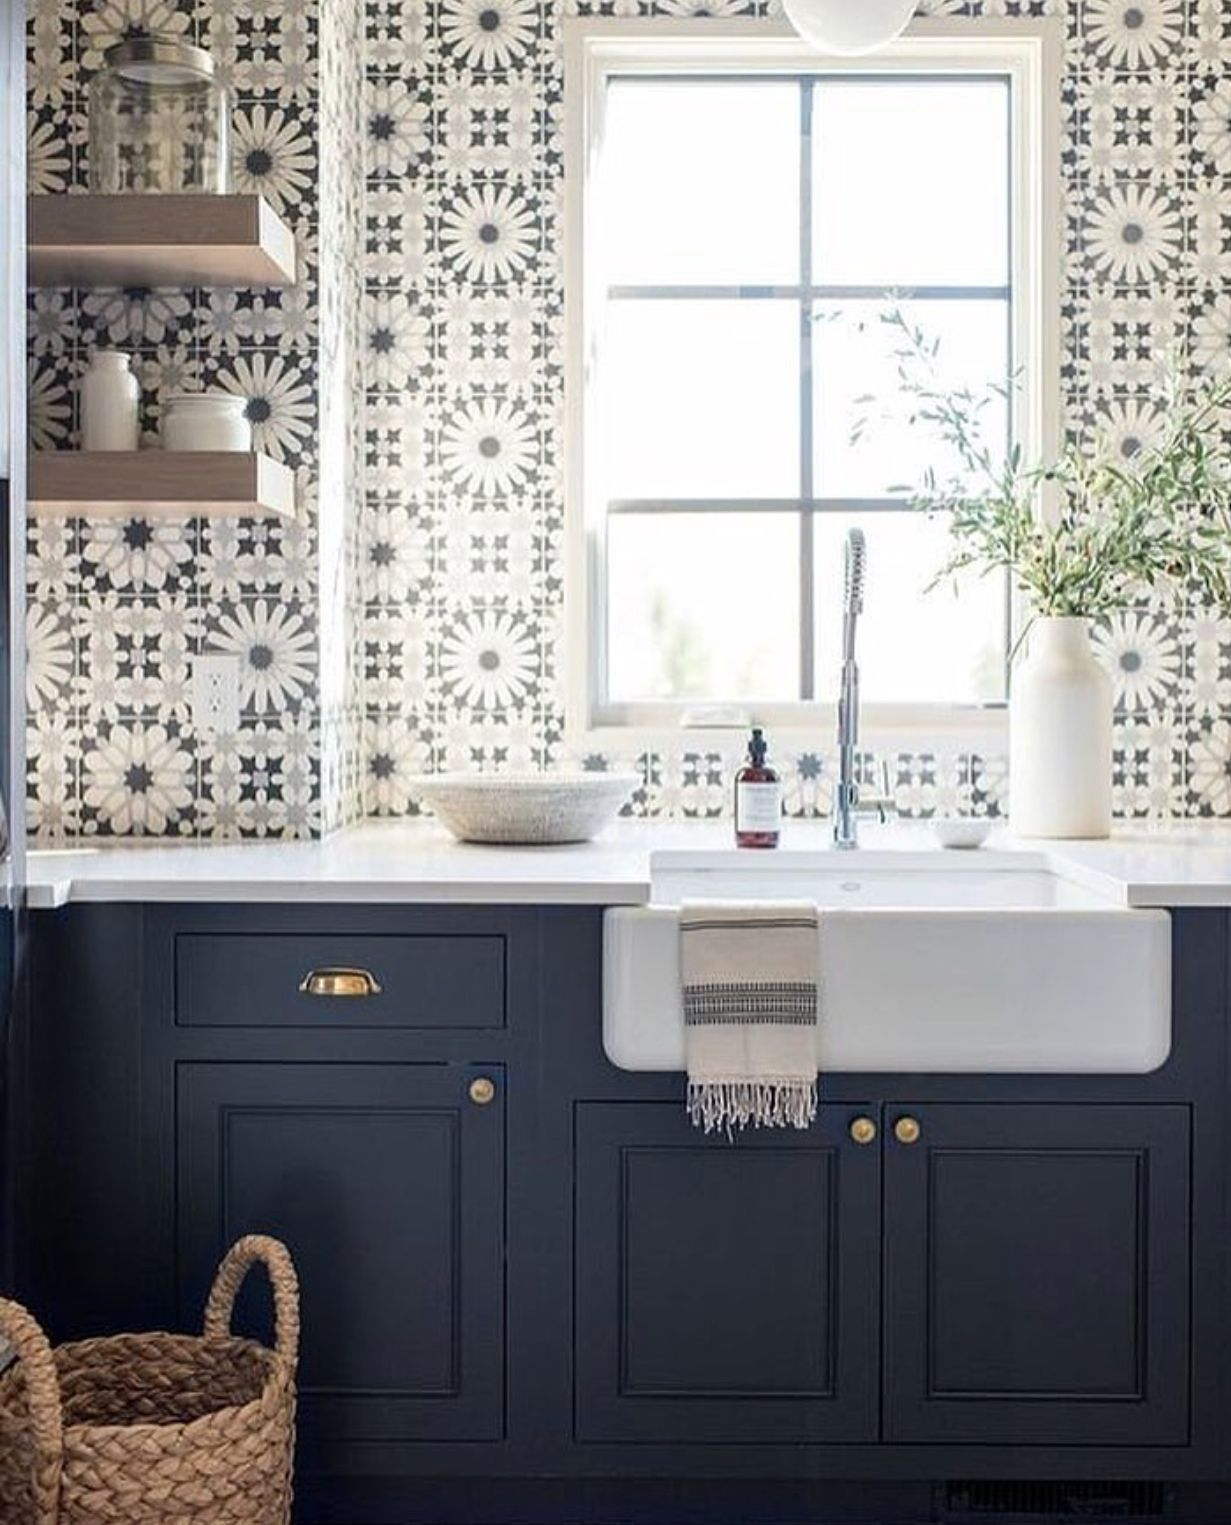 Moroccan Tiles On Kitchen Wall With Open Shelving And Navy